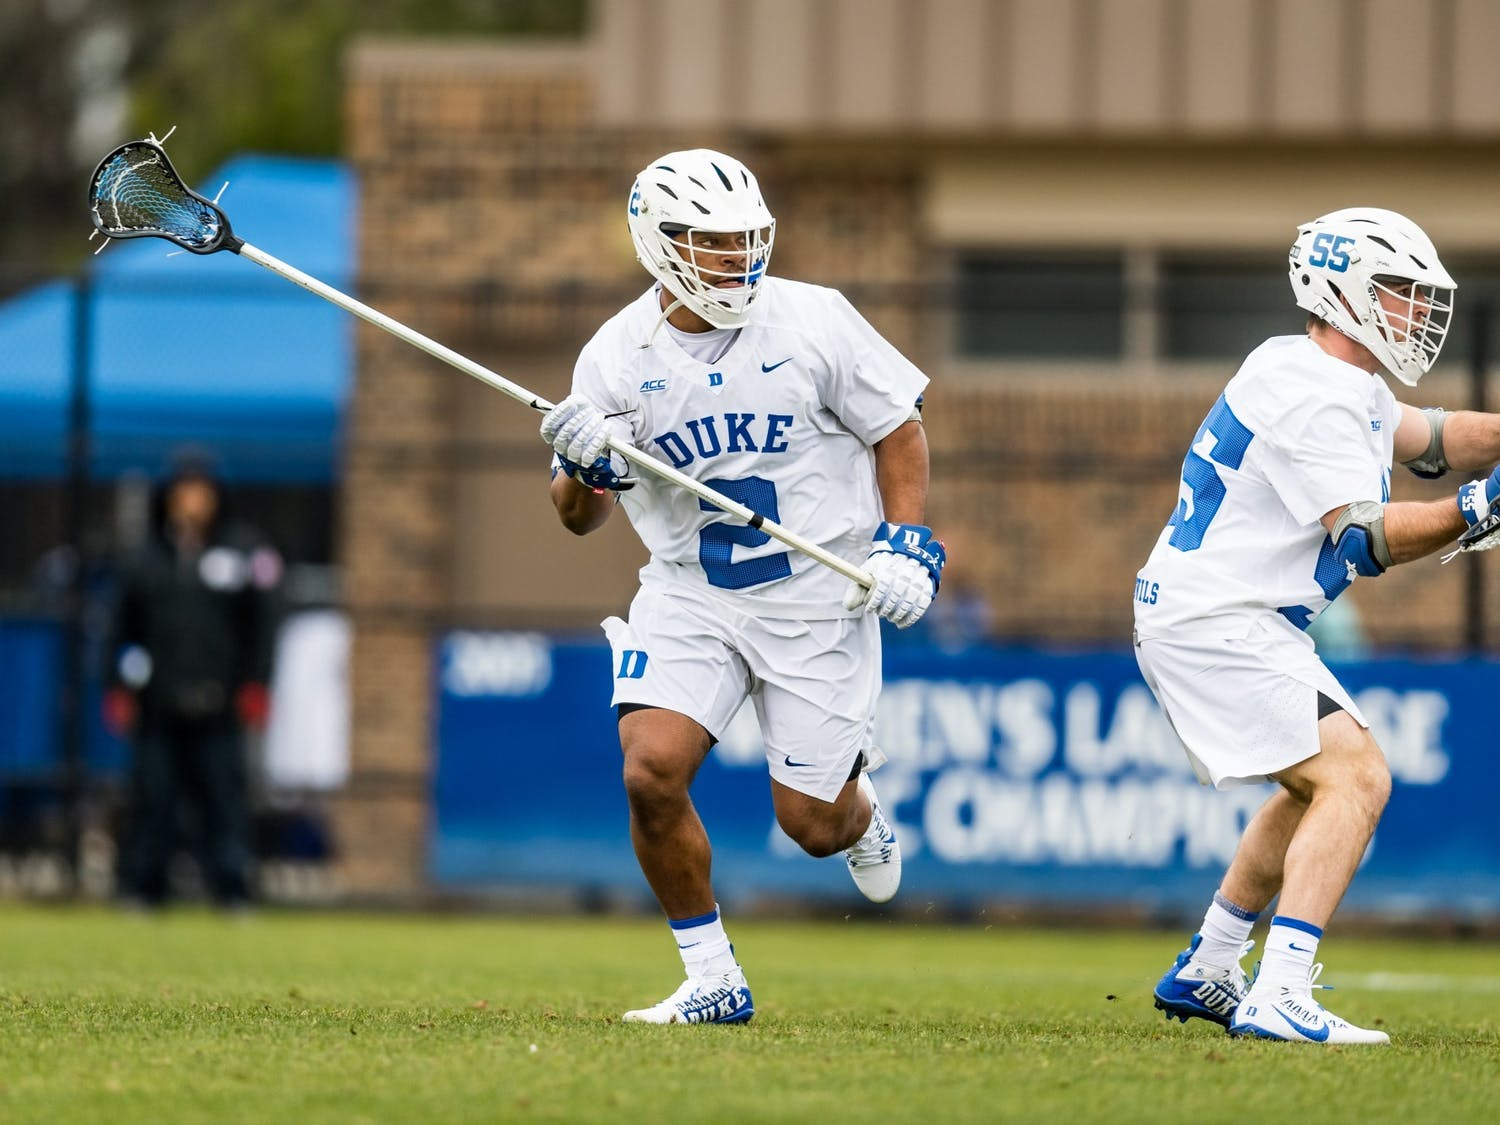 Graduate student and team captain JT Giles-Harris is anchoring Duke's defense in his final season.